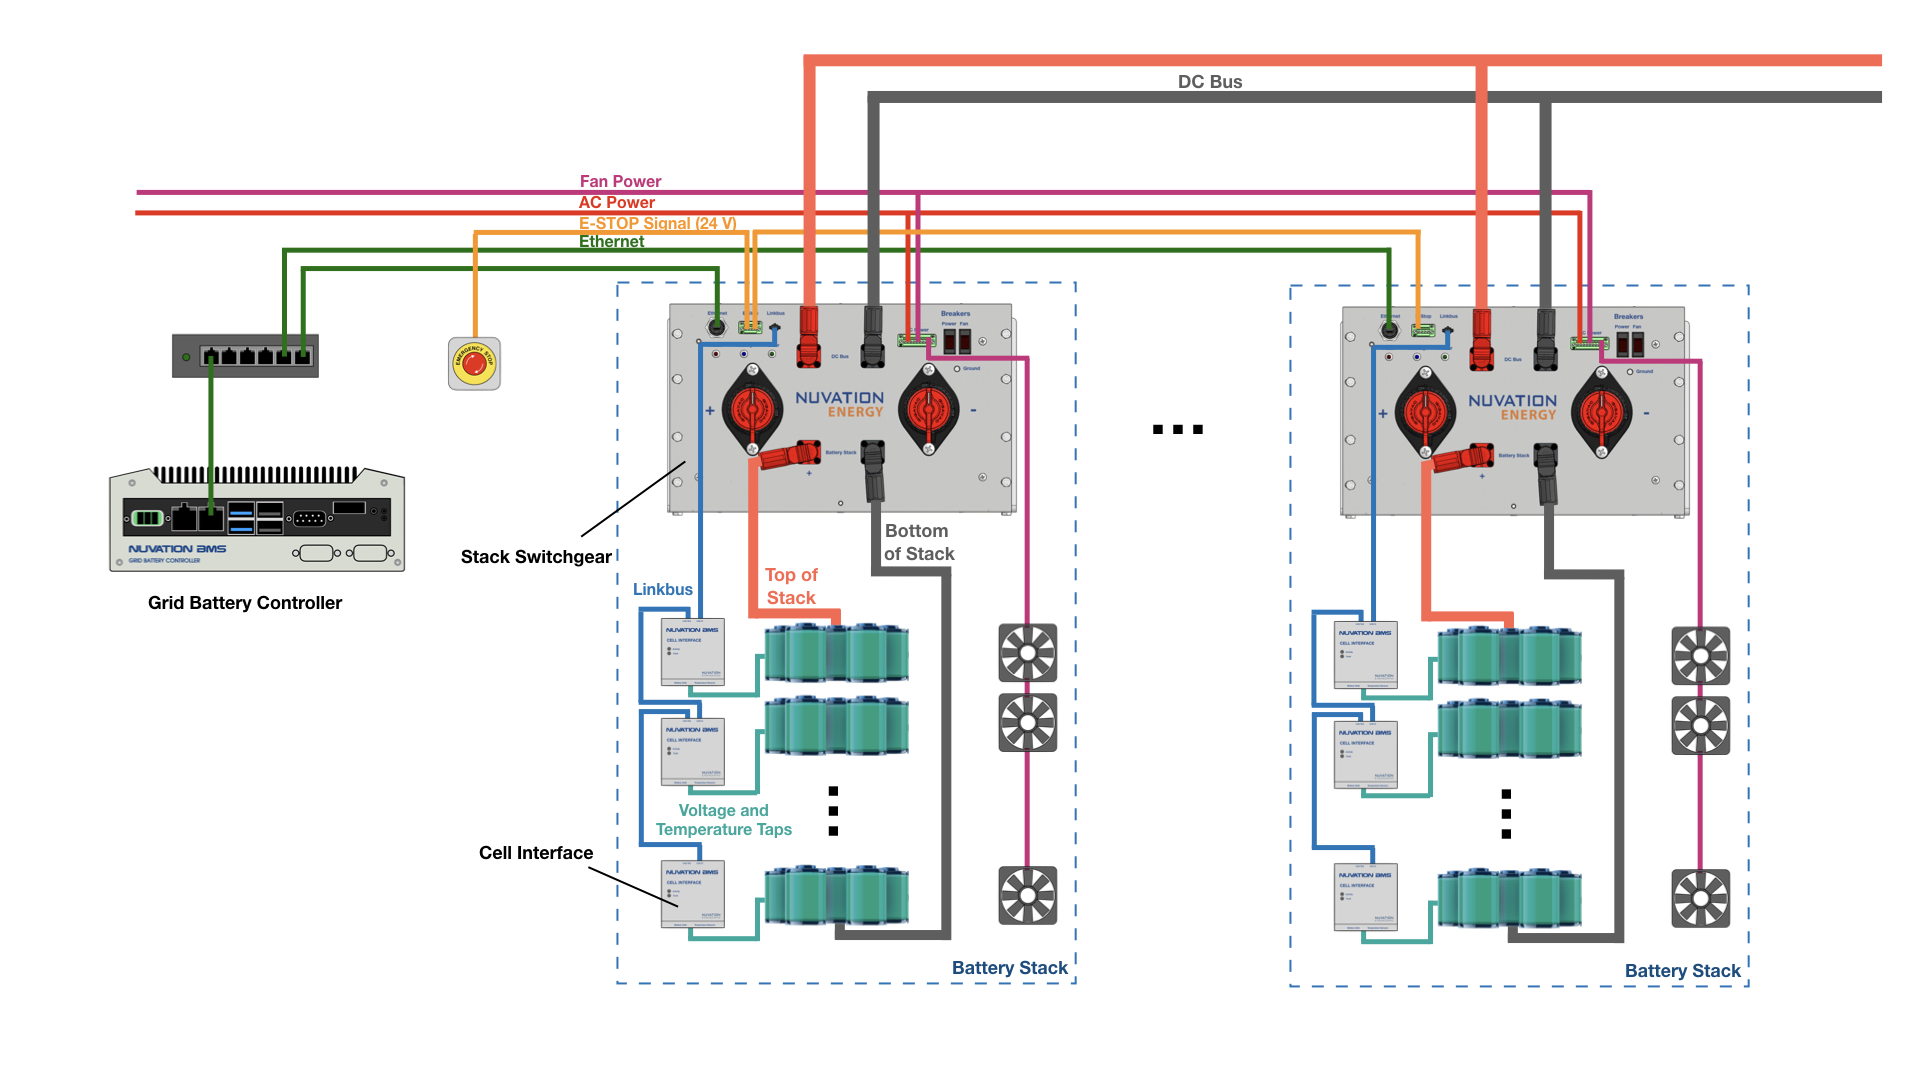 Stack Switchgear Diagram